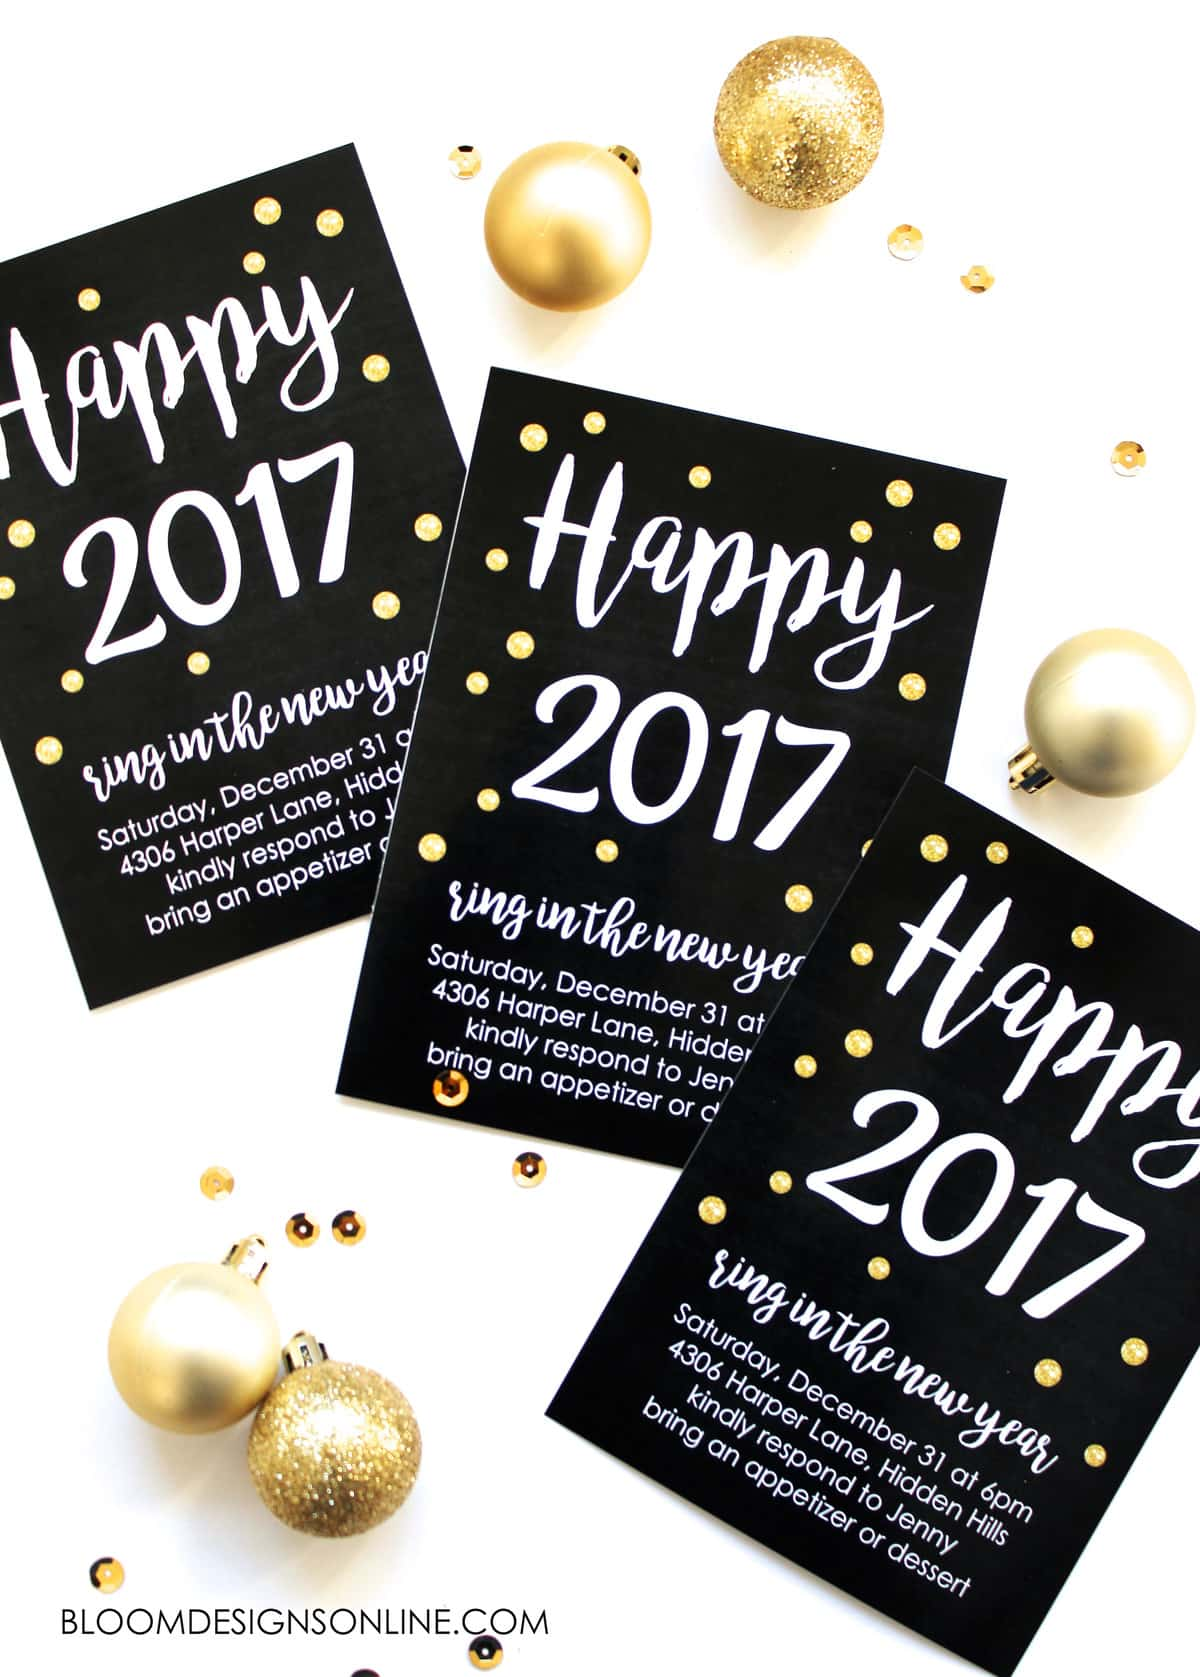 A great party starts with a great invitation! Set the mood for YOUR New Years party by downloading the file and inserting YOUR party info in the printable. That's right - it's editable!!